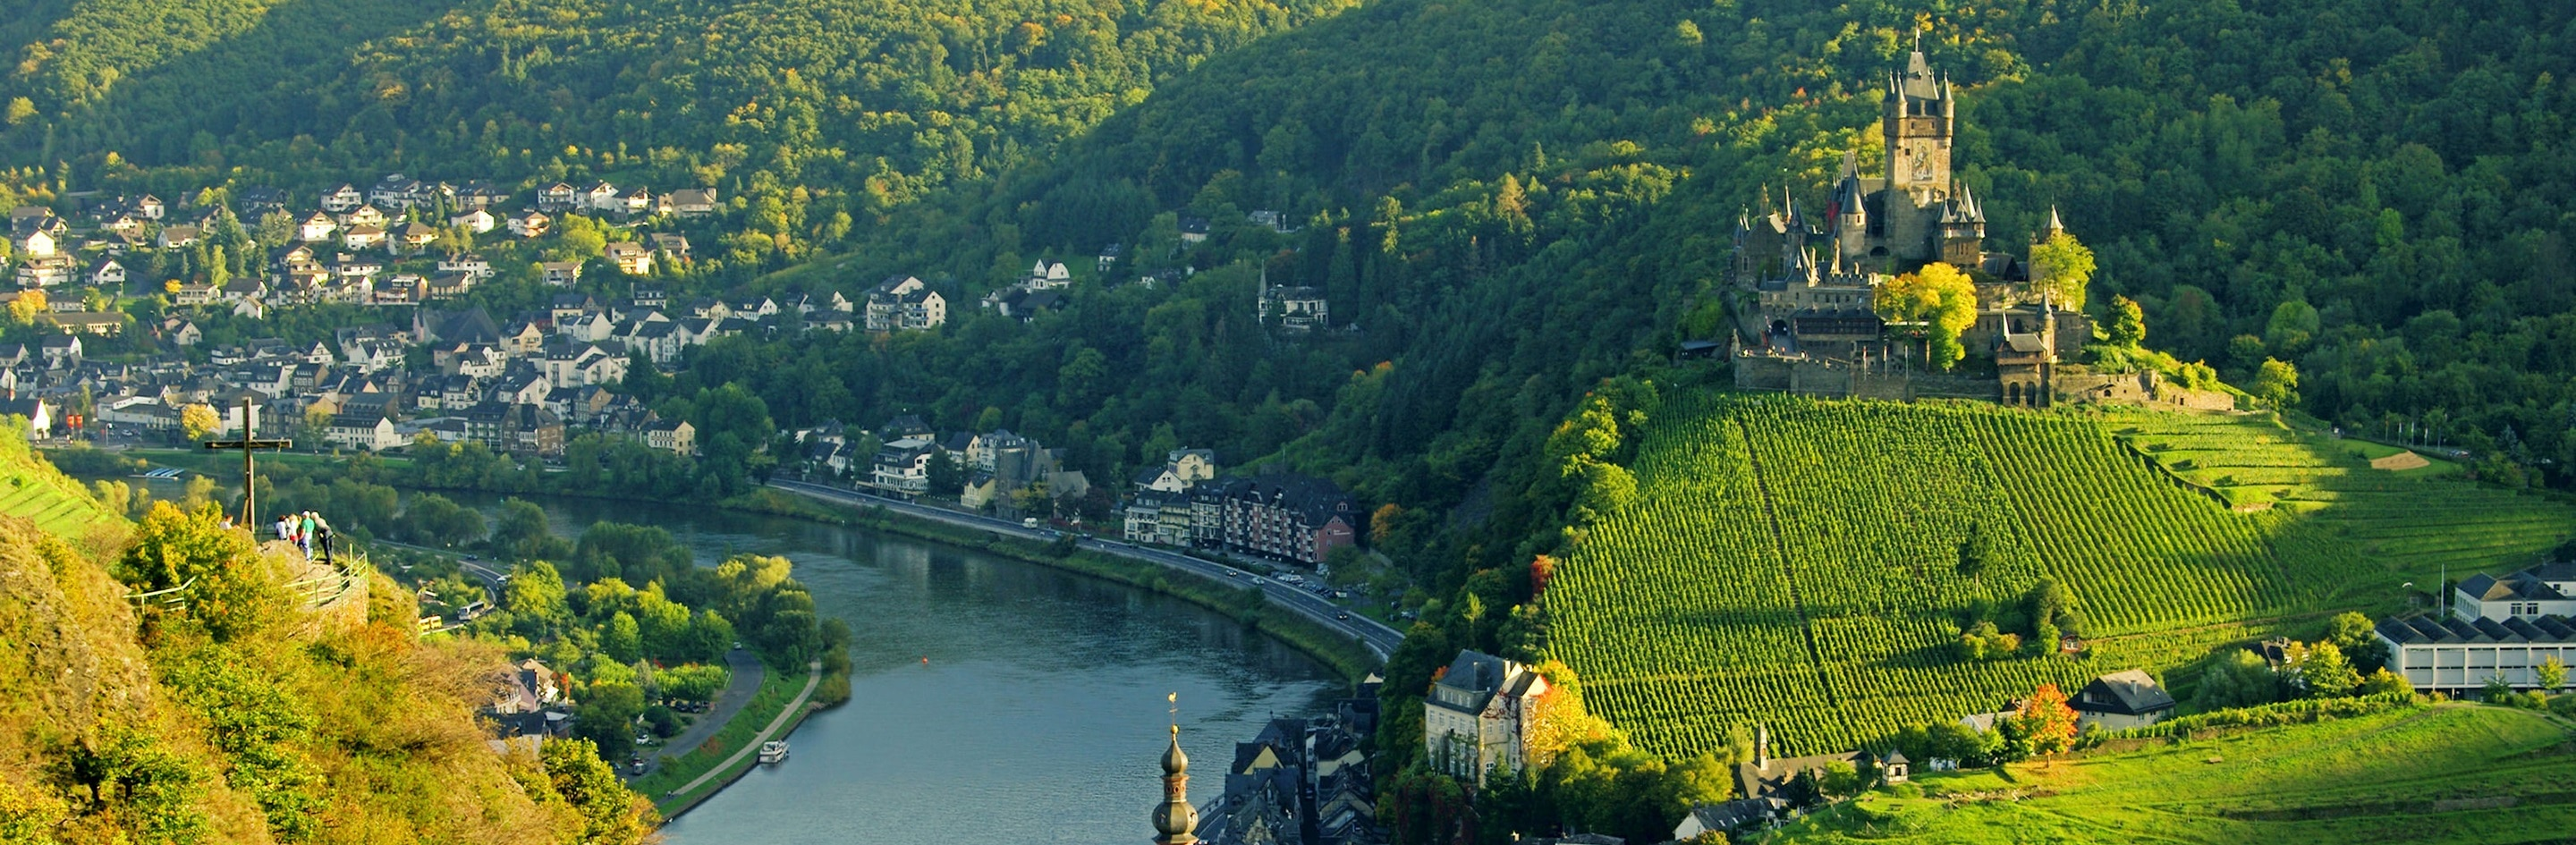 Rhine Amp Moselle Delights River Cruise 2018 Amawaterways